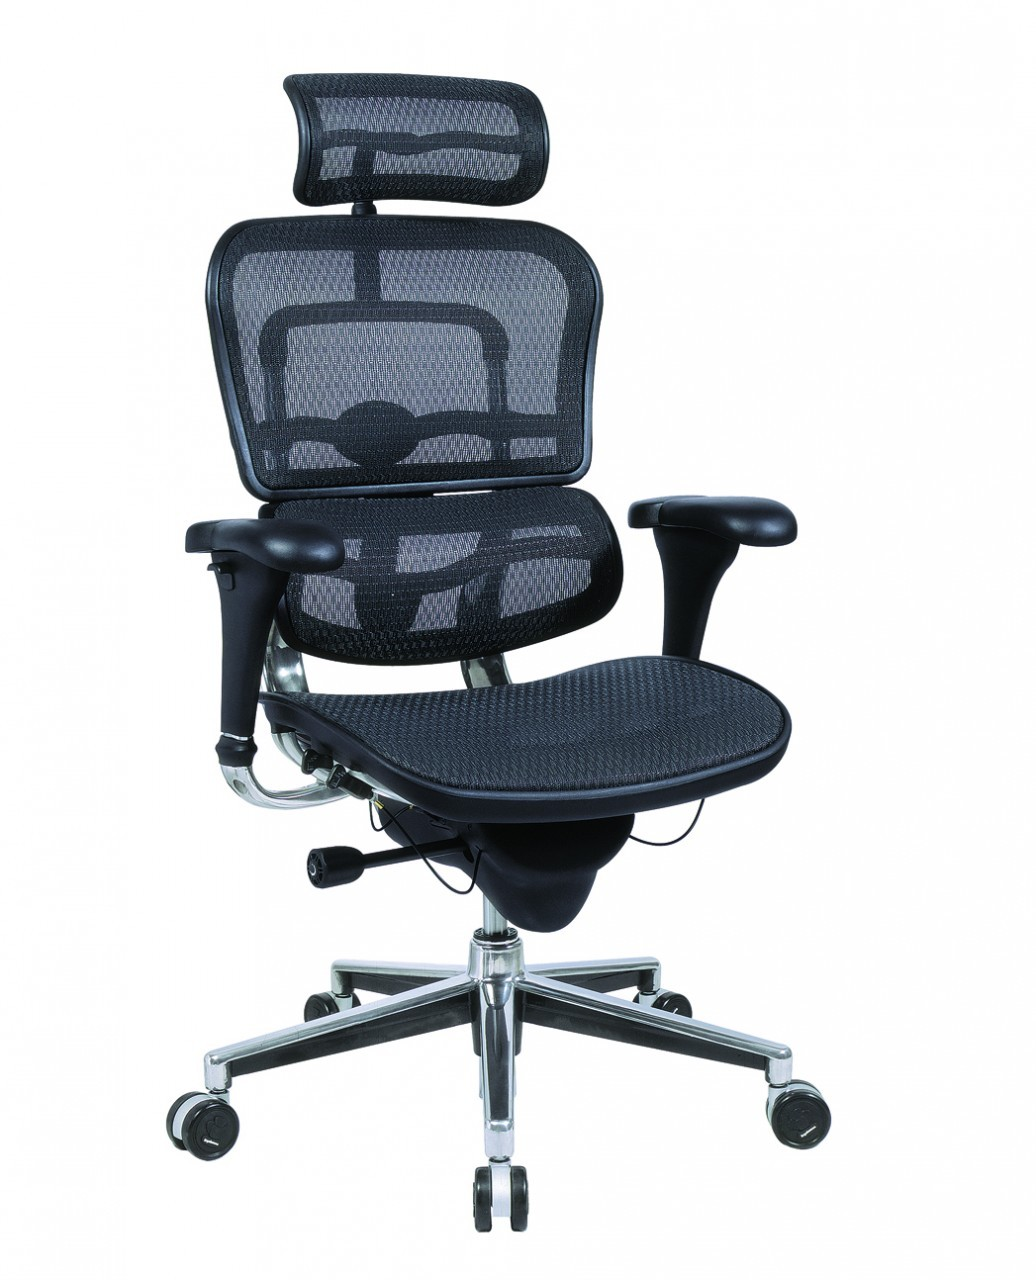 Best Desk Chair For Back And Neck Pain